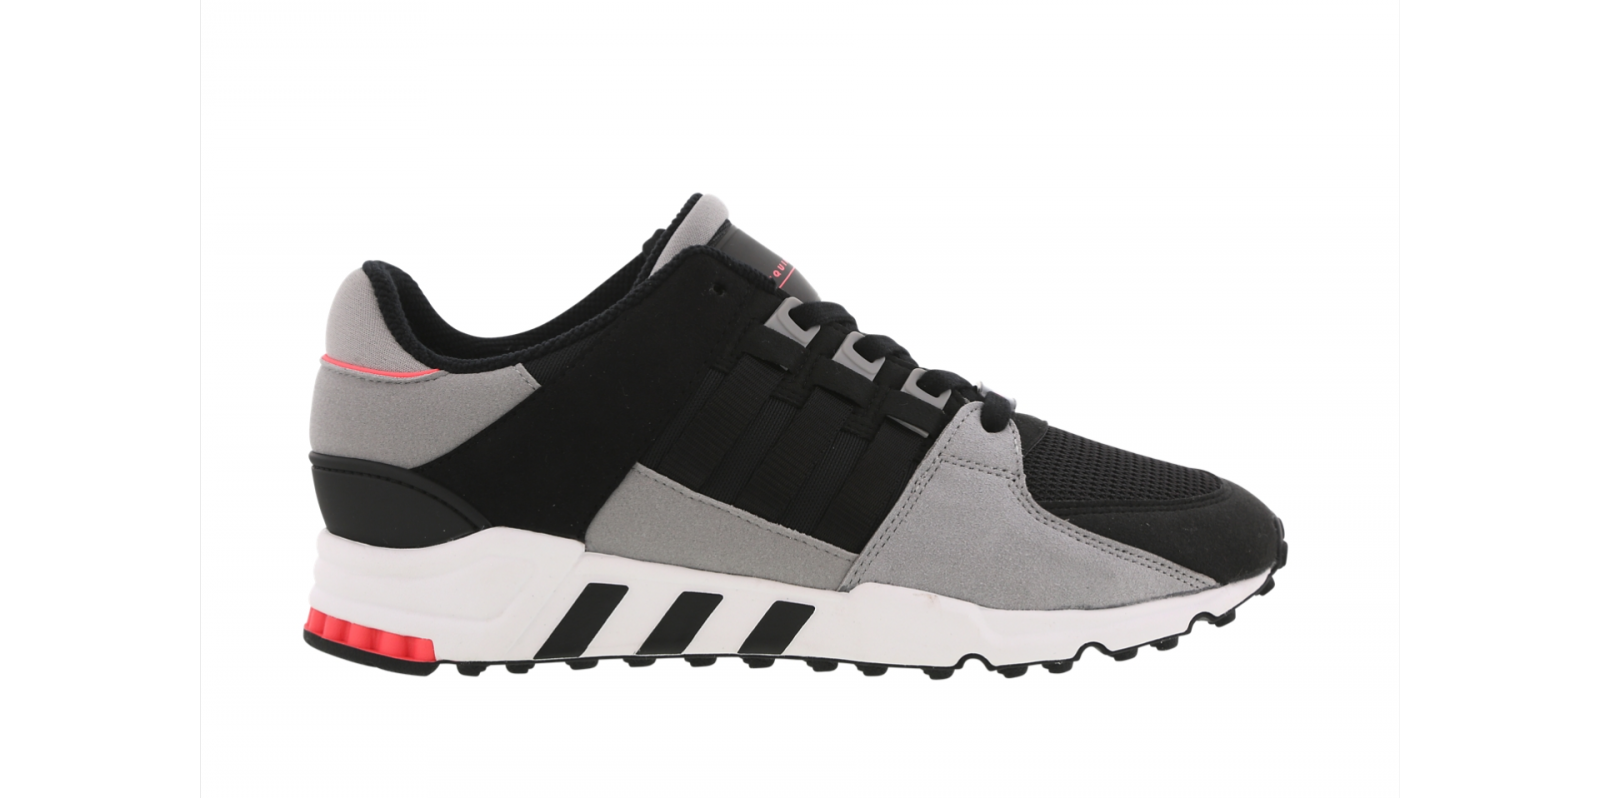 Mens EQT ADIDAS EQT Mens SUPPORT RF Black Trainers S76843 0afe2e